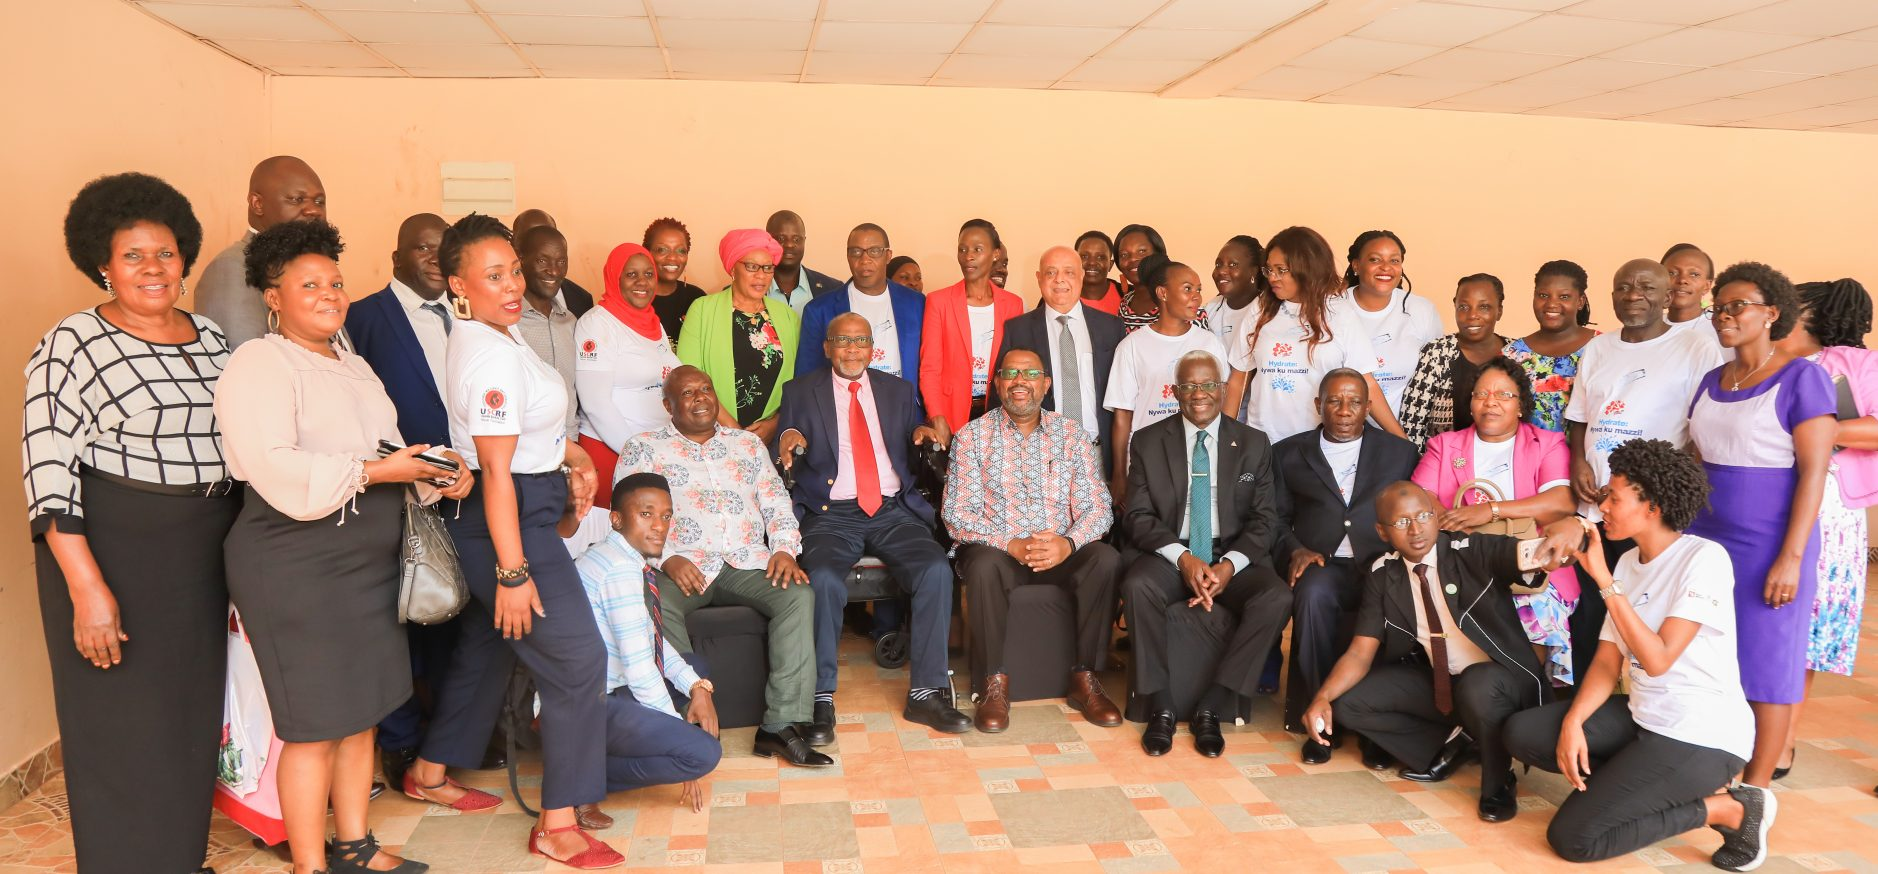 The 5th Sickle Cell Conference at Hotel Africana, Uganda